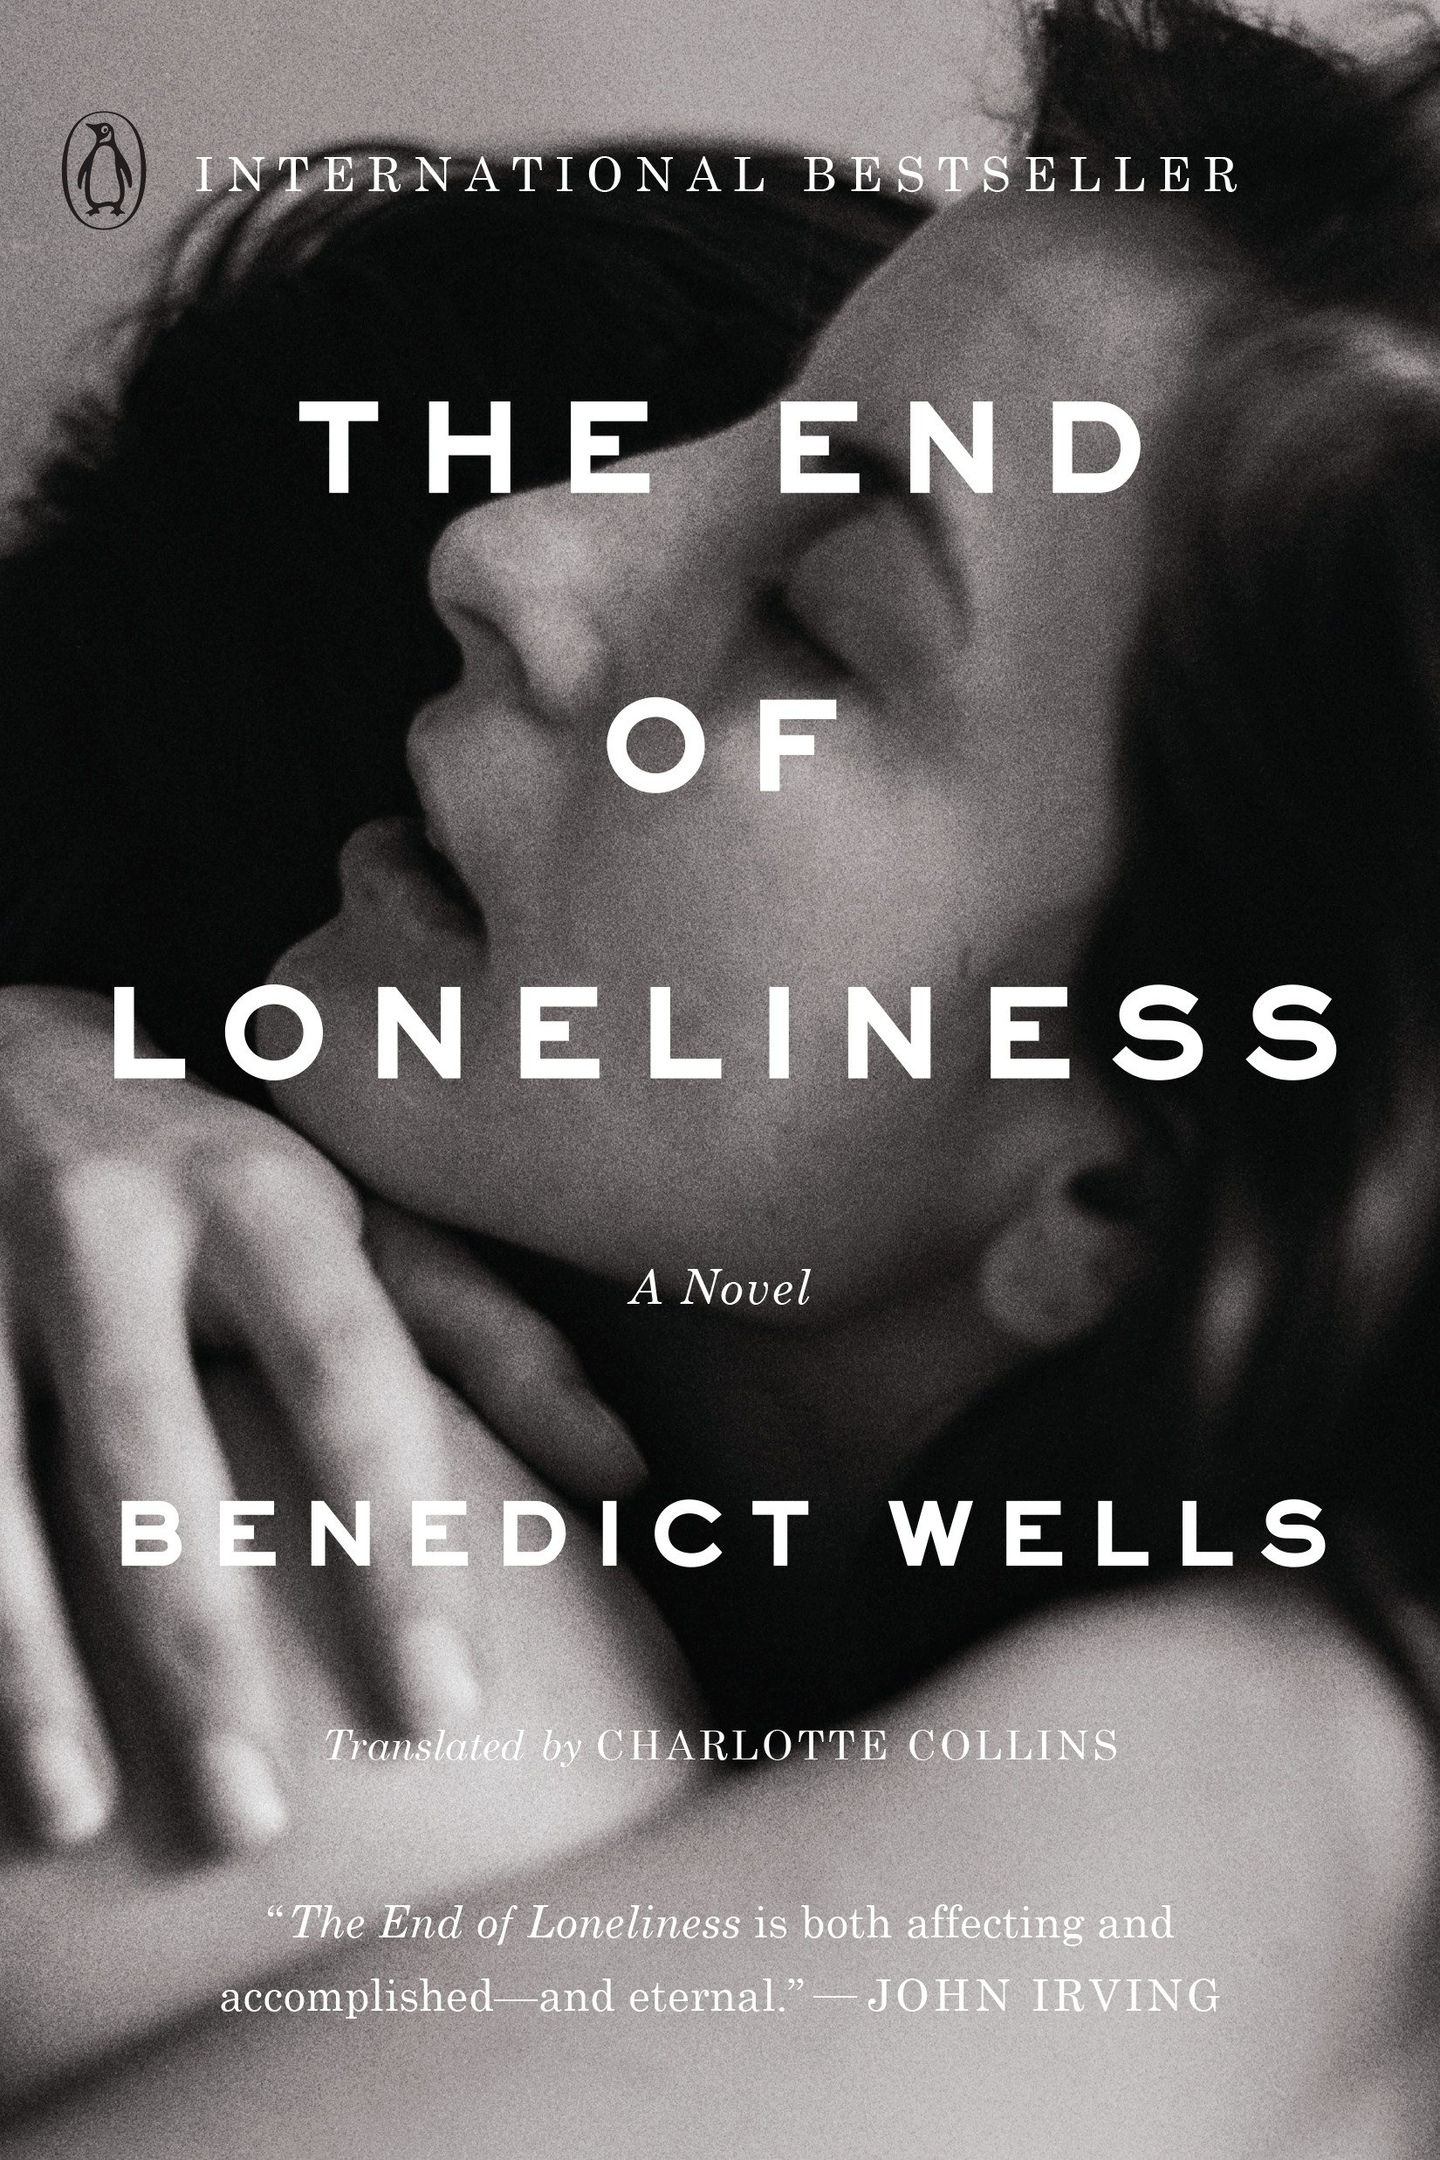 Benedict Wells – The End Of Loneliness